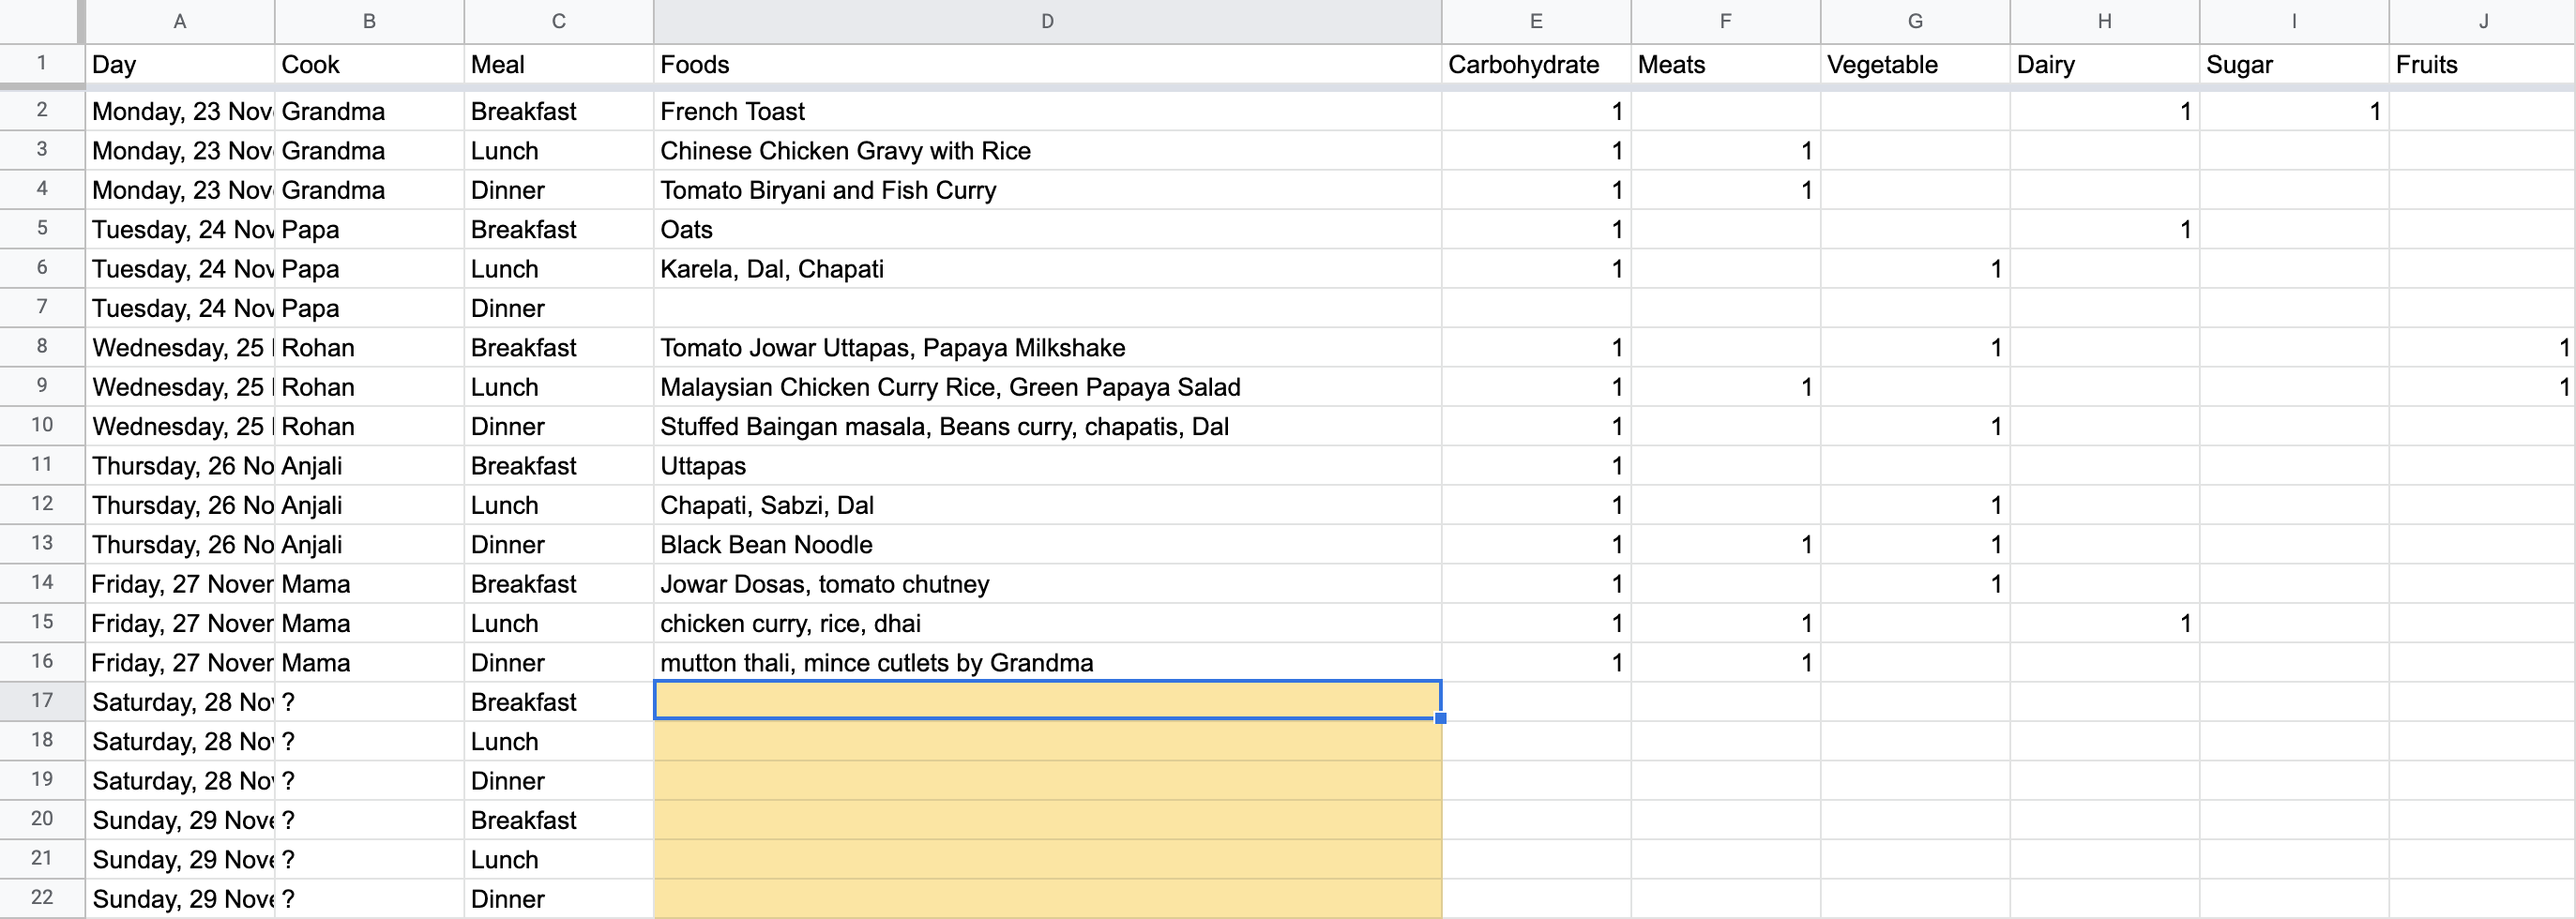 The spreadsheet with each meal tagged with the food components it contained.